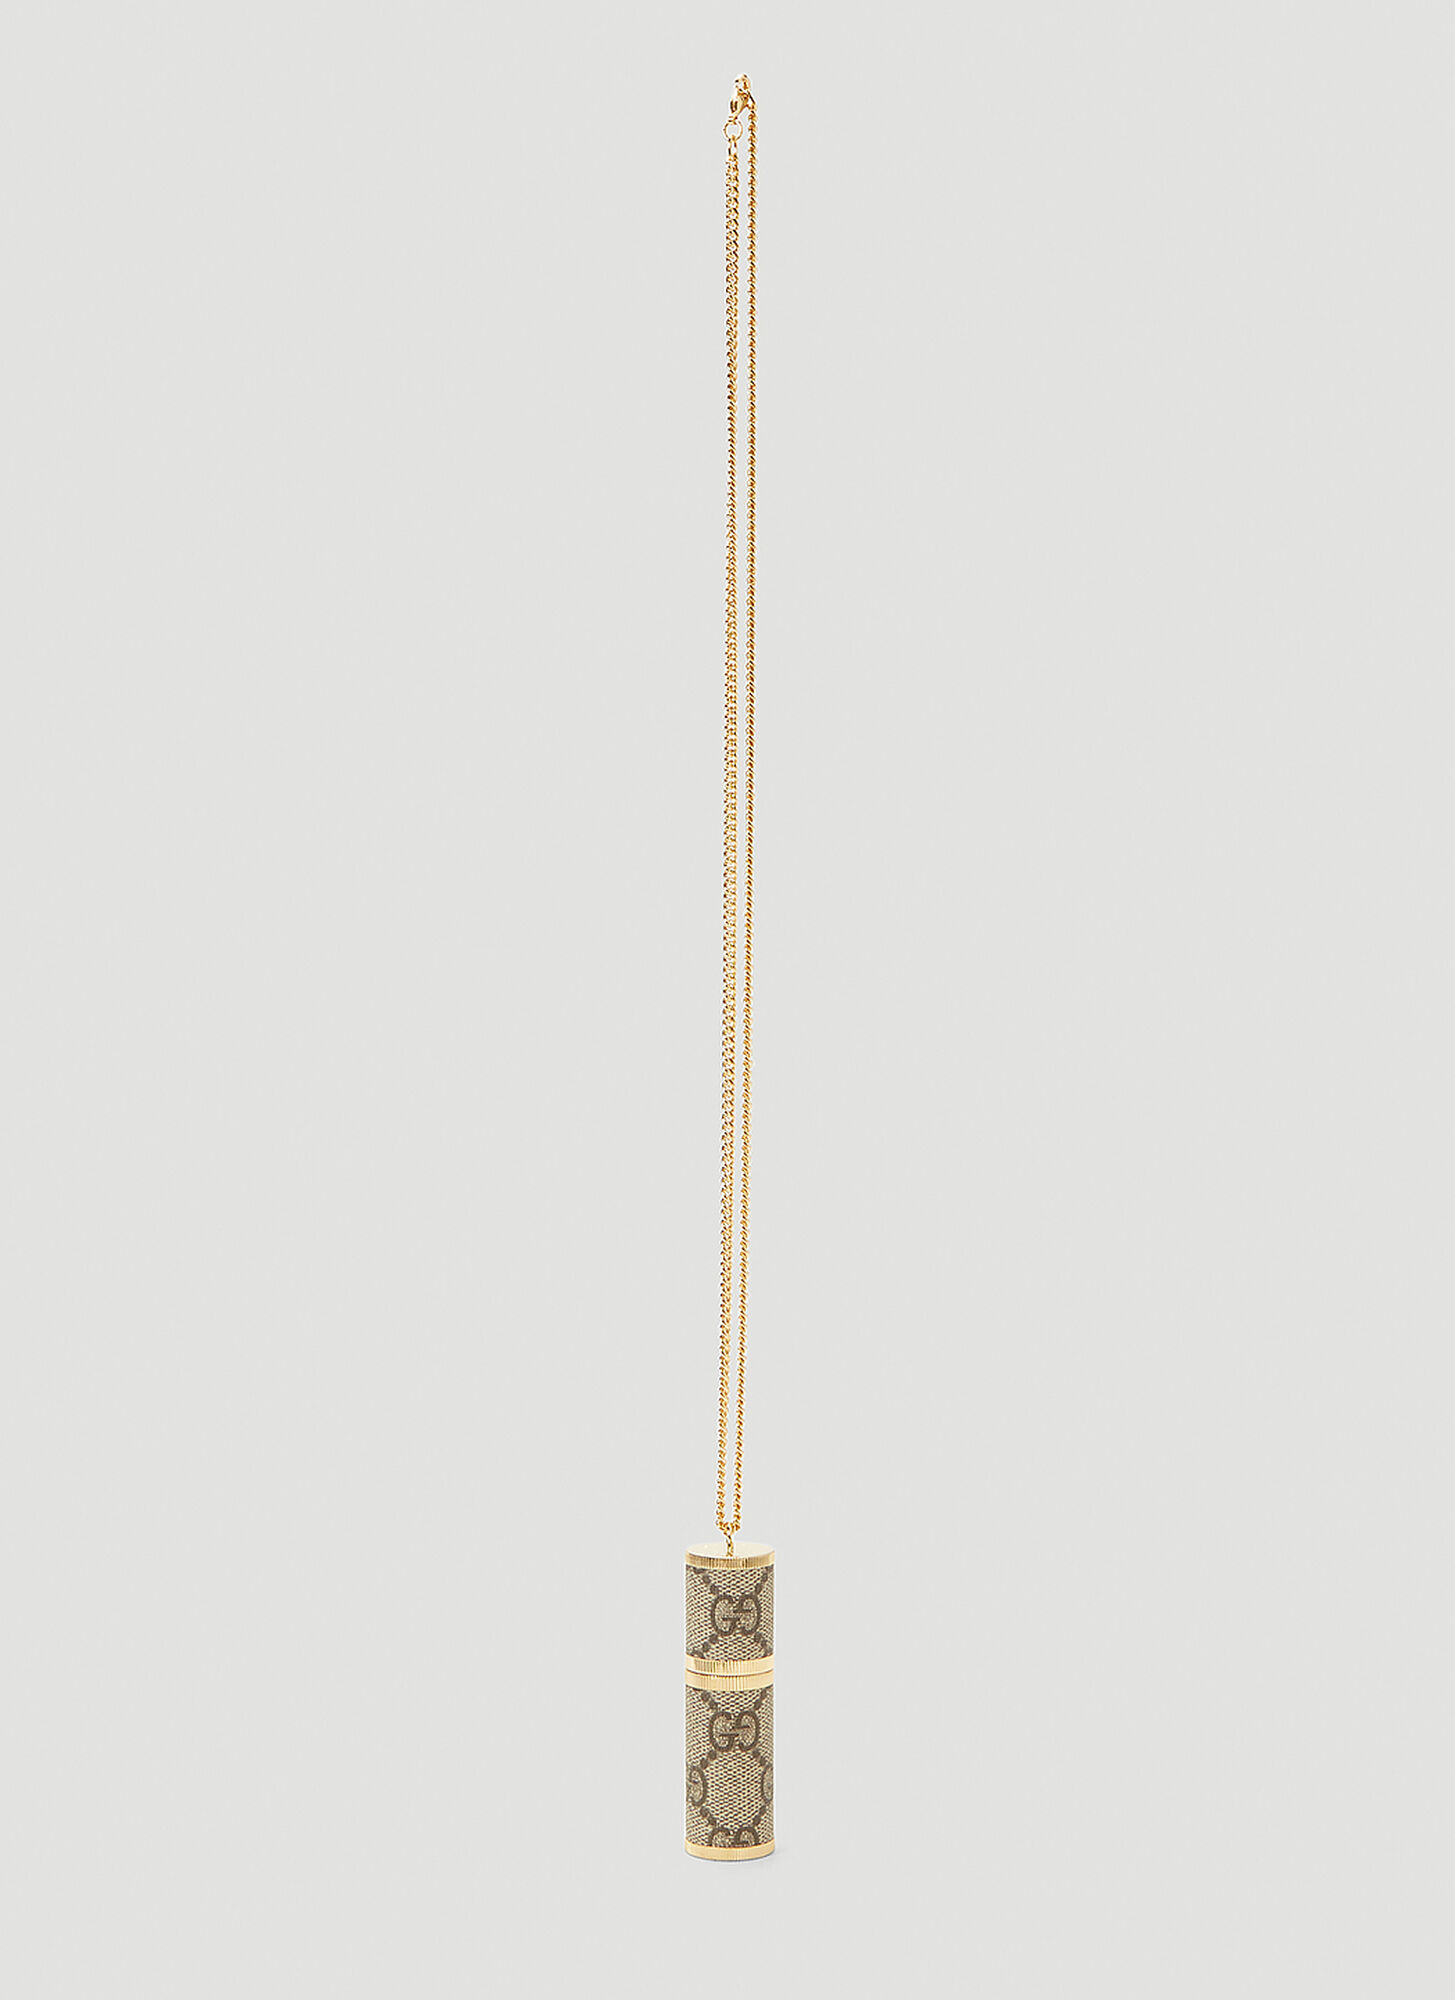 Gucci Perfume Refillable Atomiser Necklace in Brown